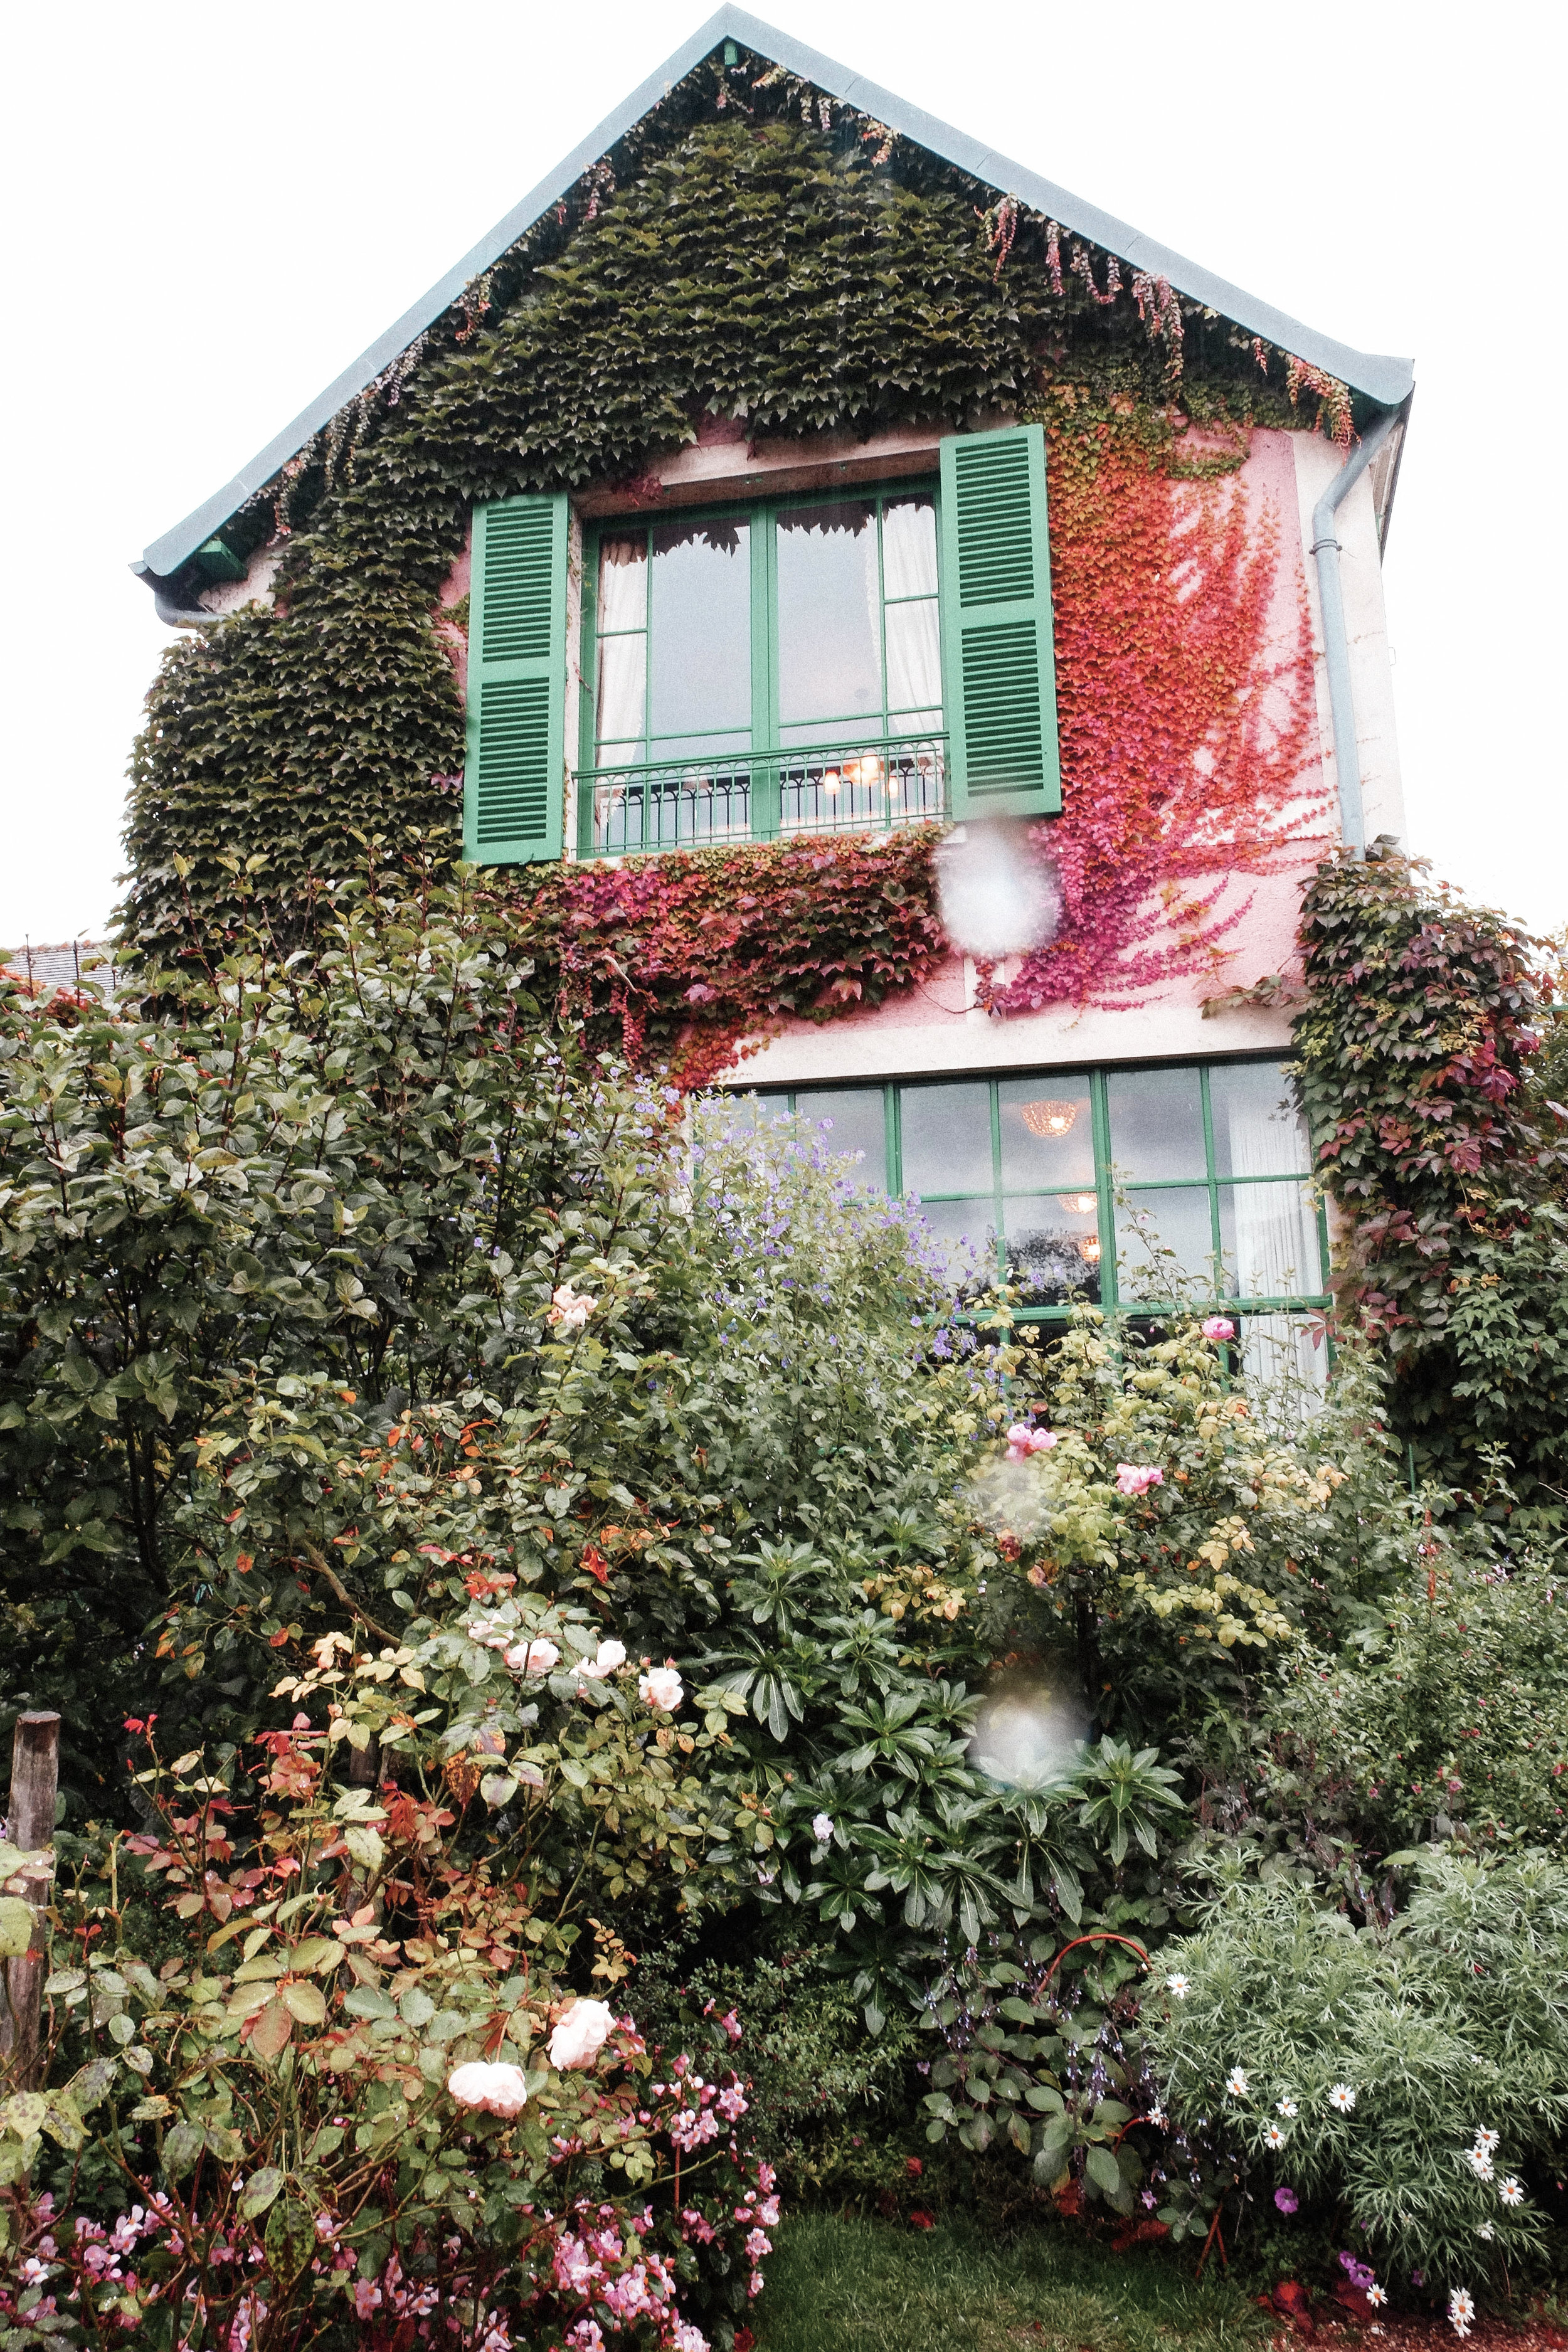 Lesly Lotha - Giverny - France - Europe - 8